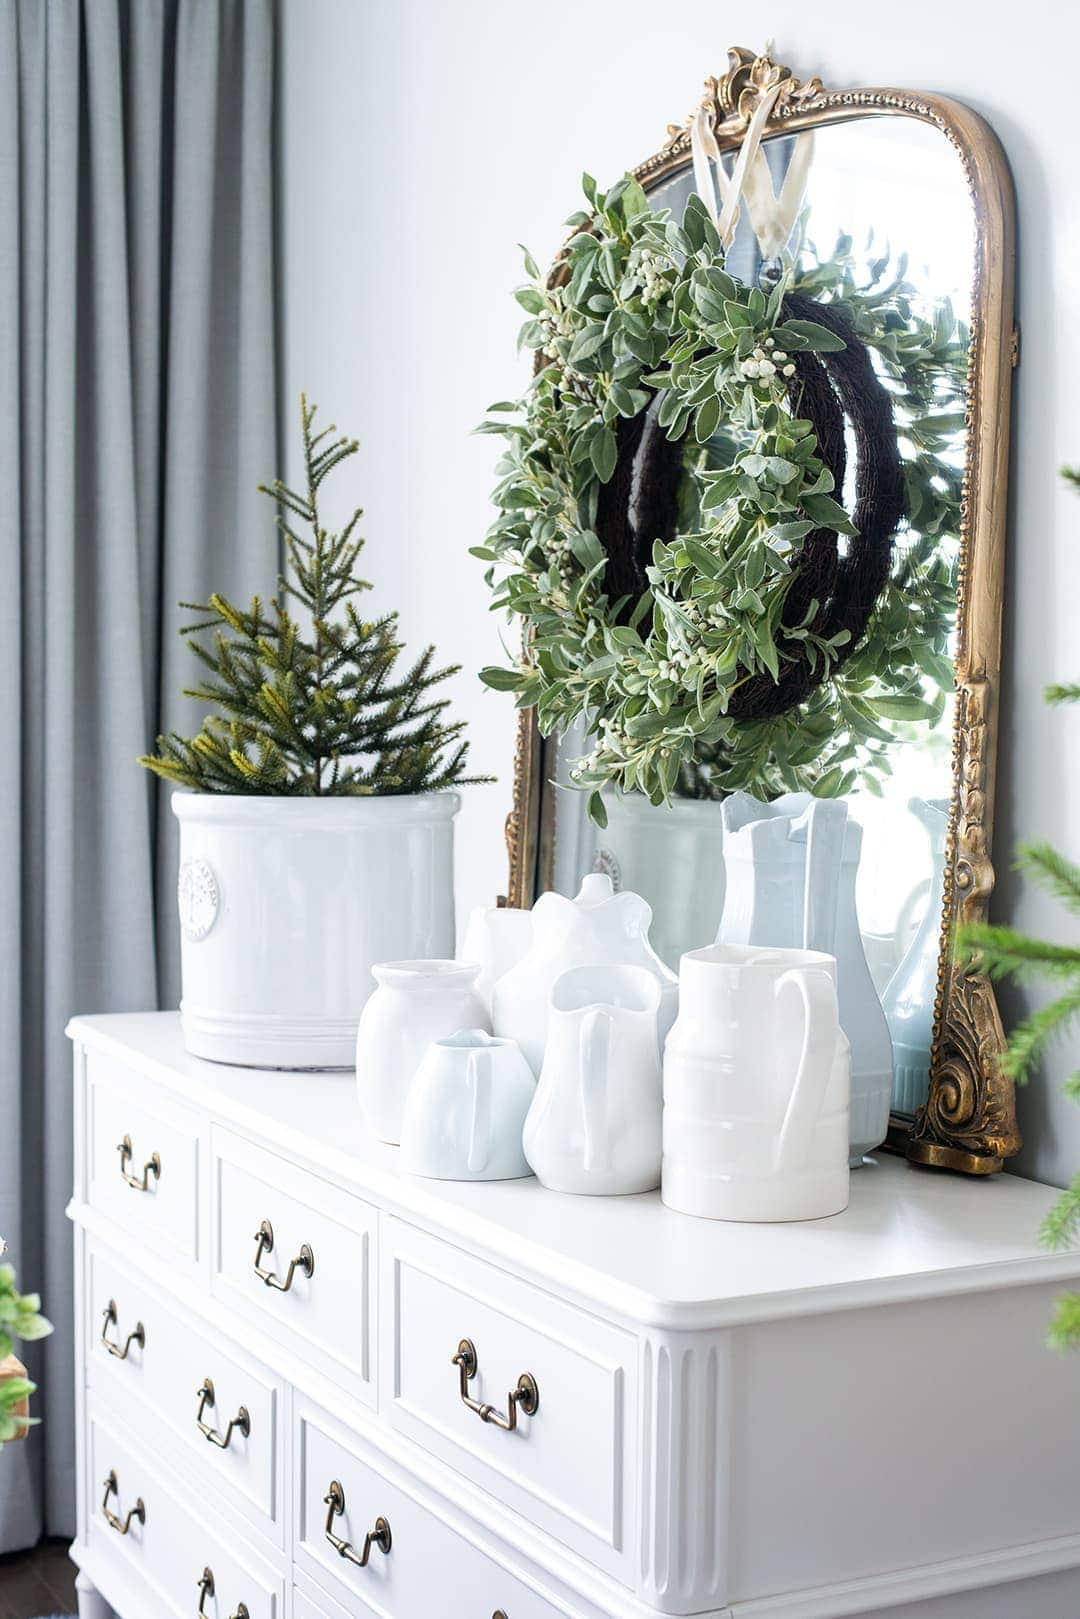 Painted cabinet, oversized mirror, adorned with hanging wreaths, white milk jugs and a real mini Christmas tree.